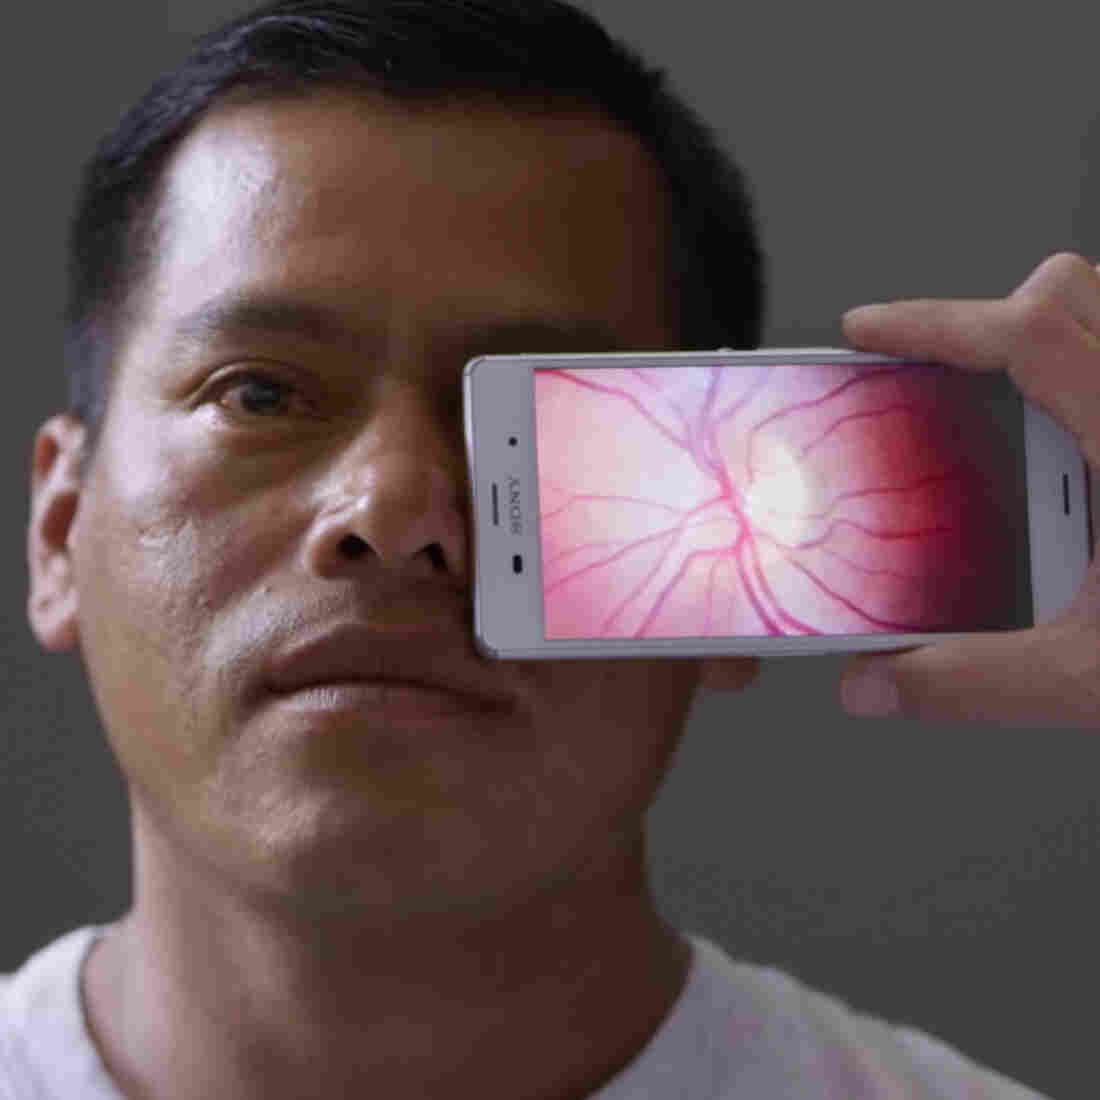 Smartphones Are So Smart They Can Now Test Your Vision